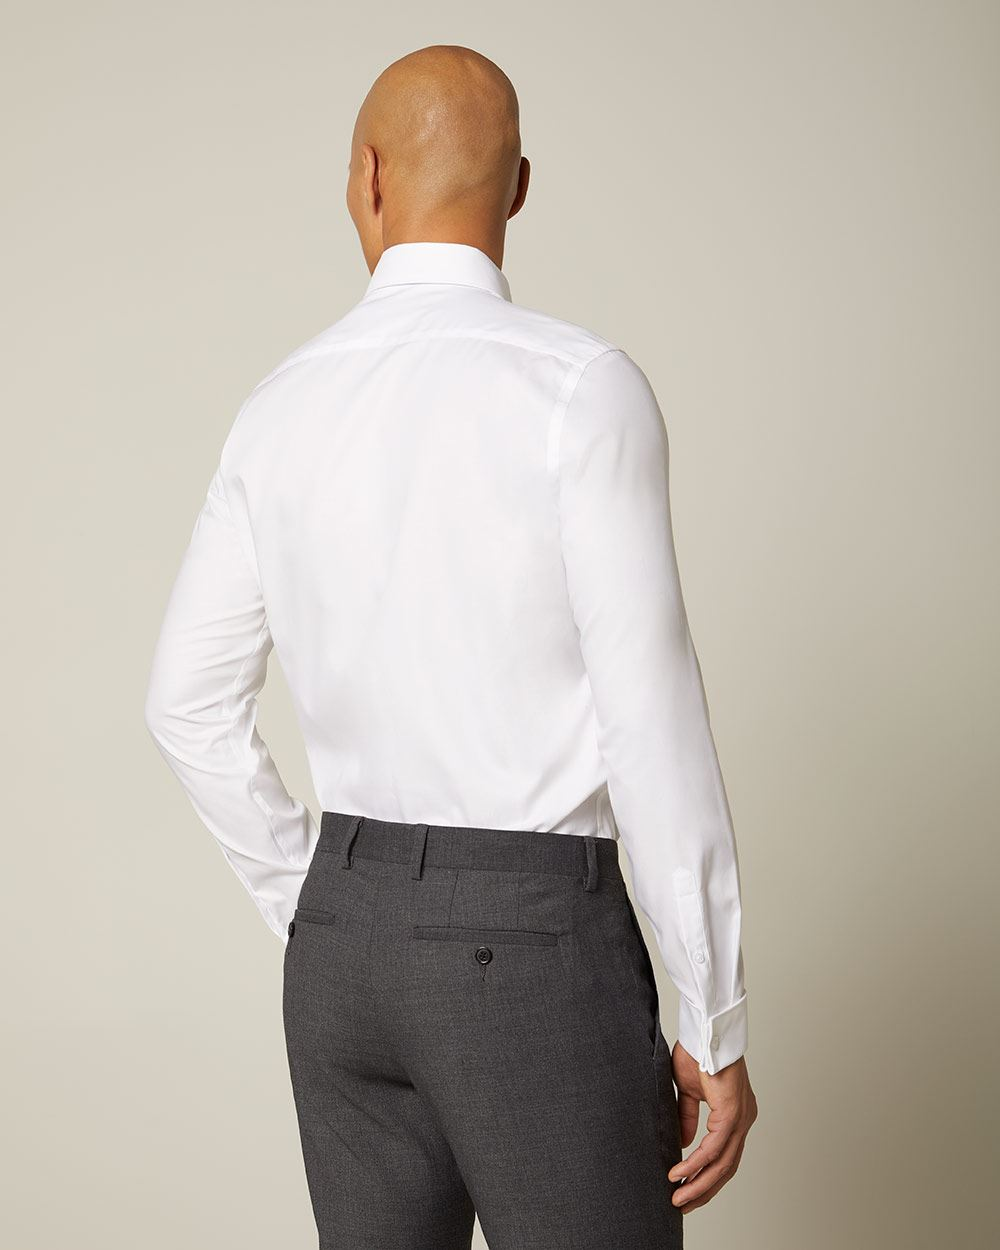 b8afb791a0af Gallery Source · White French Cuff Dress Shirt With Collar Bar Joe Maloy